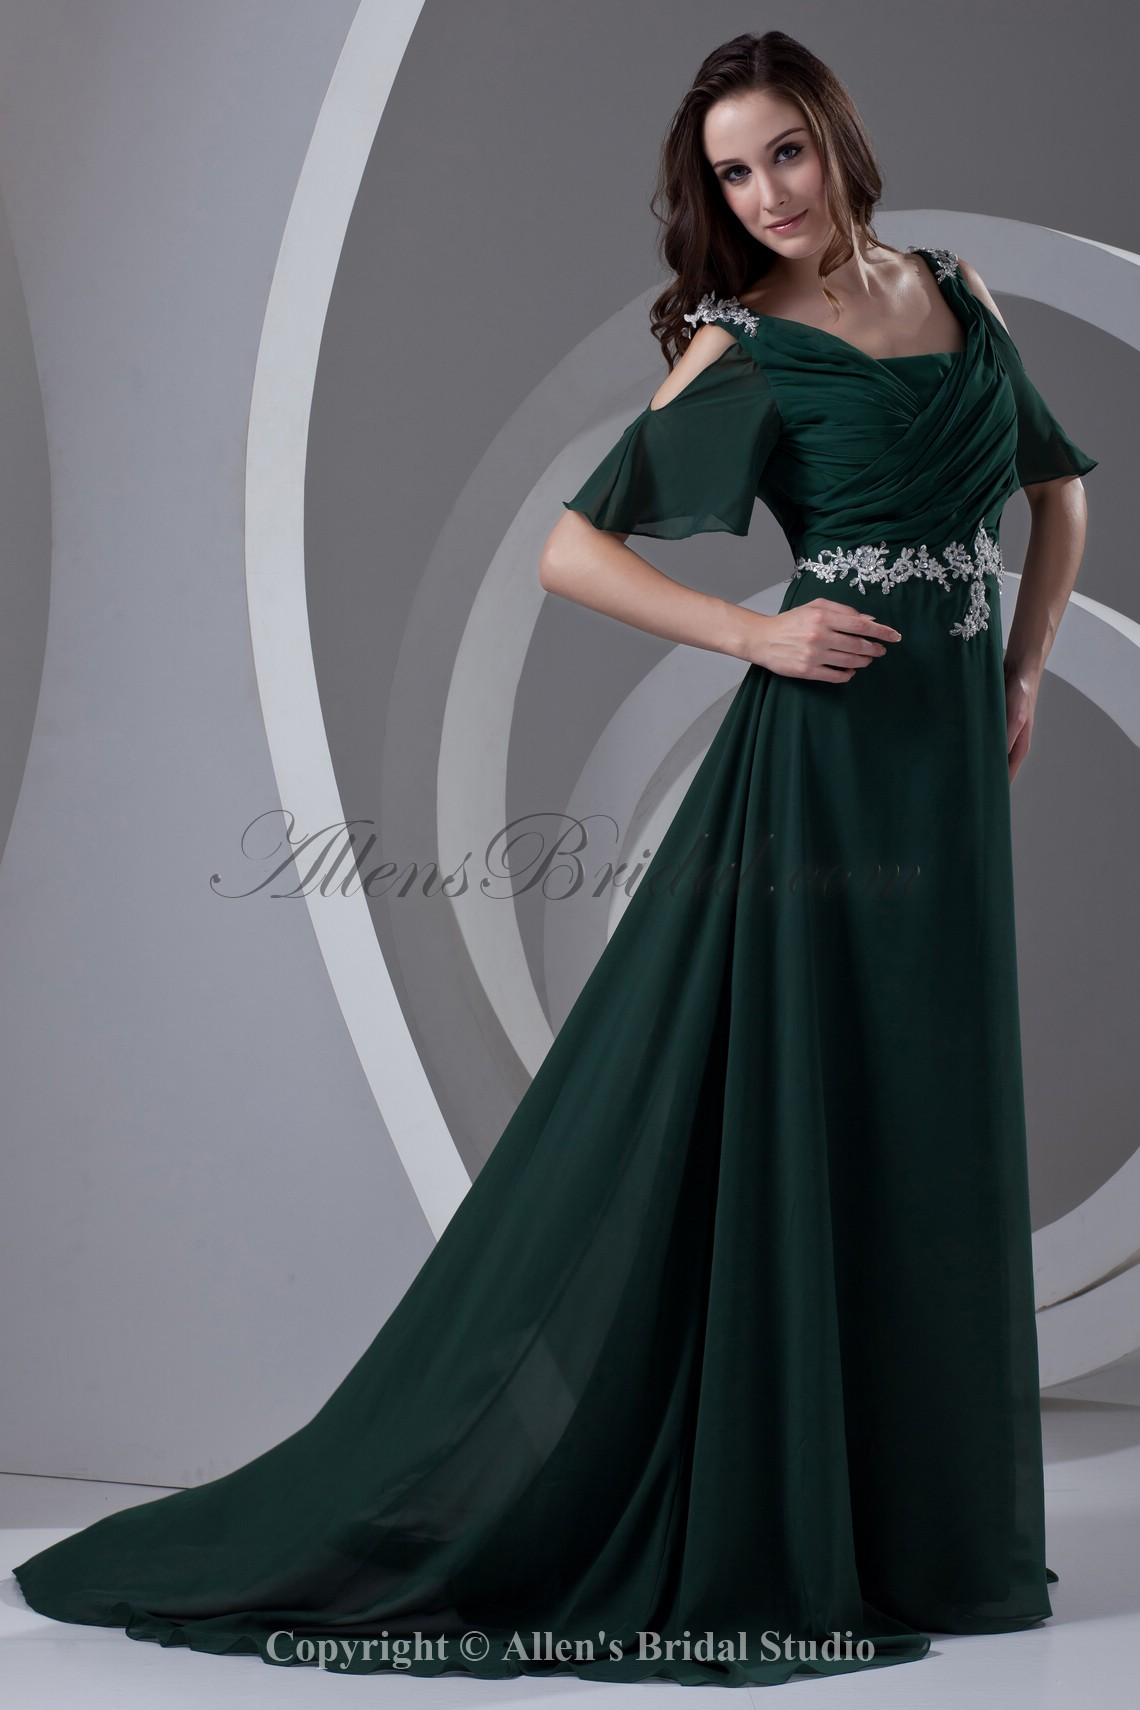 /366-2928/chiffon-straps-neckline-a-line-sweep-train-embroidered-prom-dress.jpg